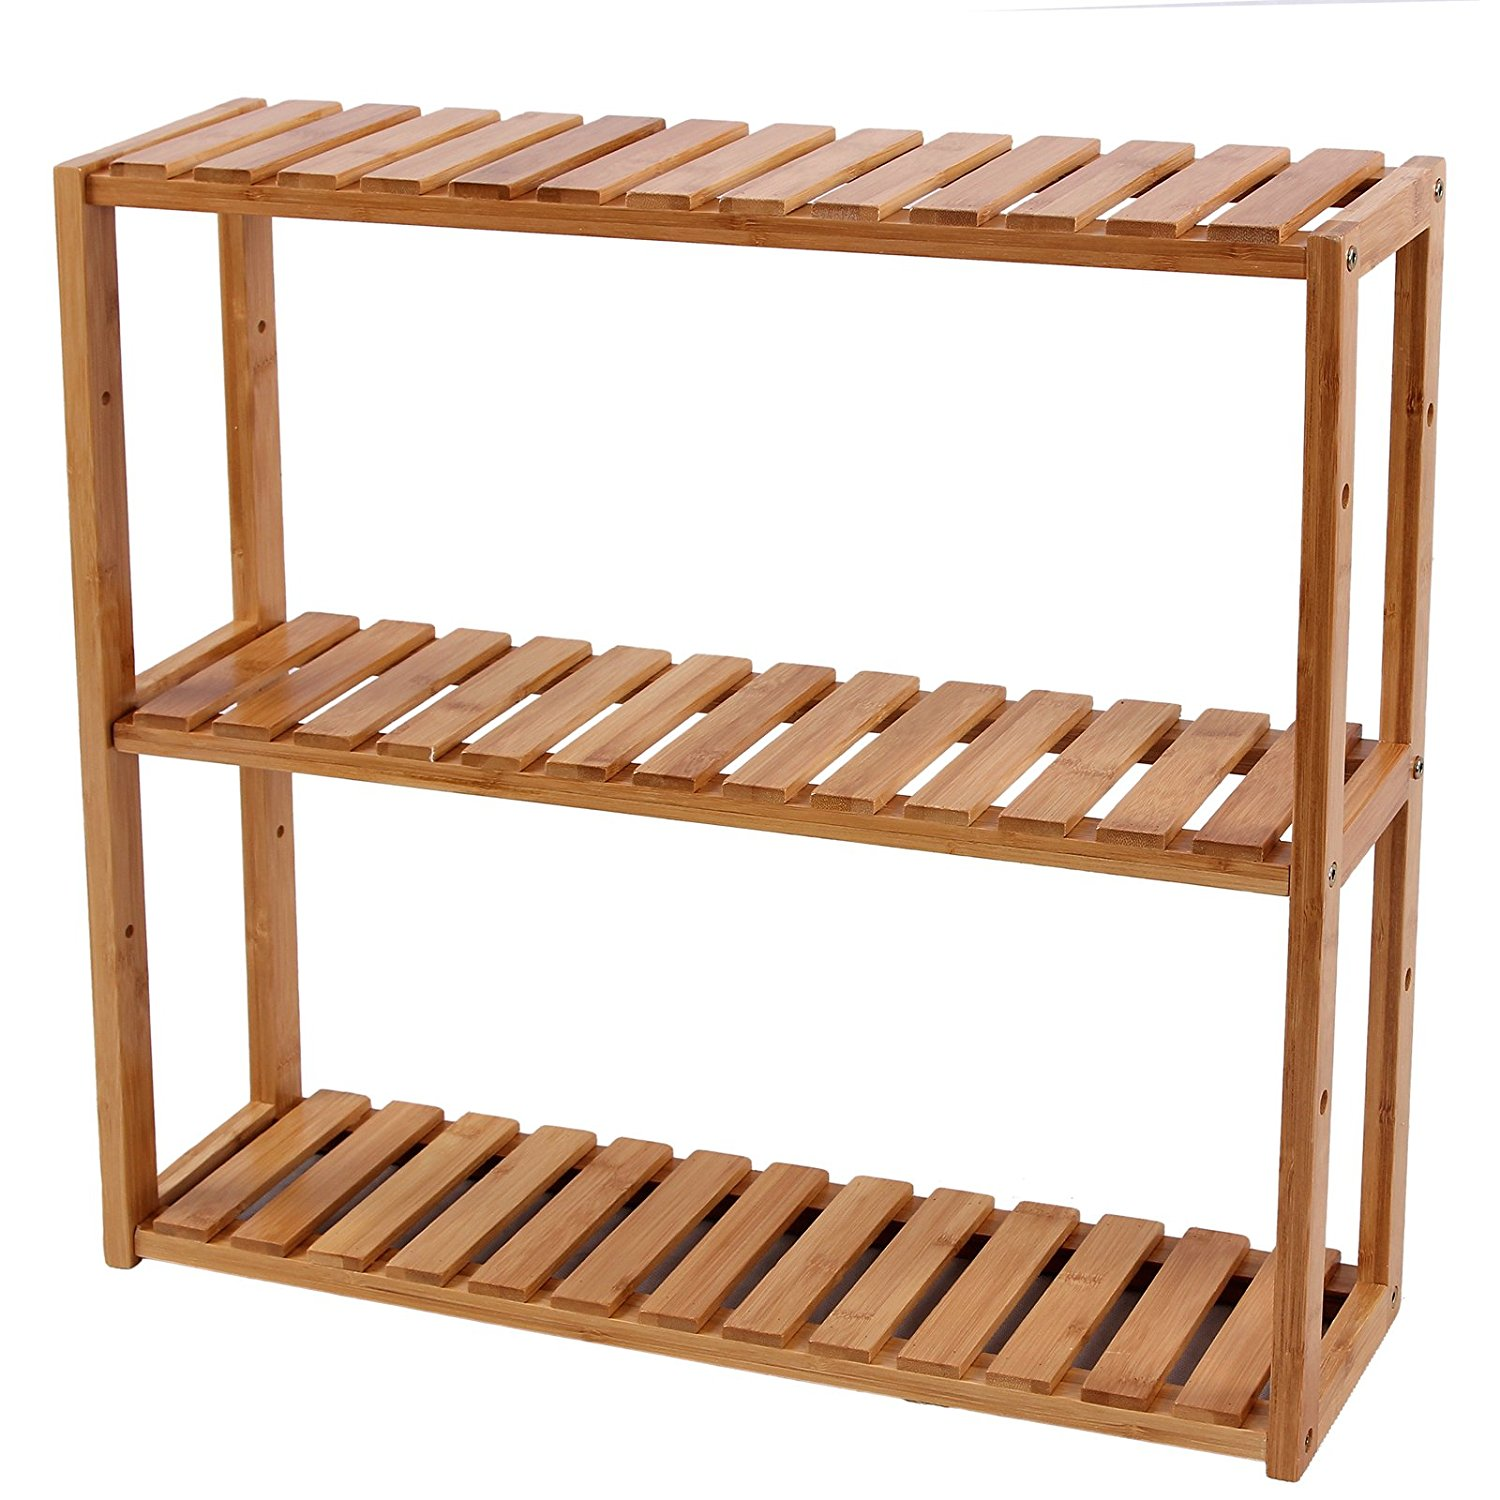 White Wall Shelves Walmart | Walmart Shelving | Walmart Wood Shelves